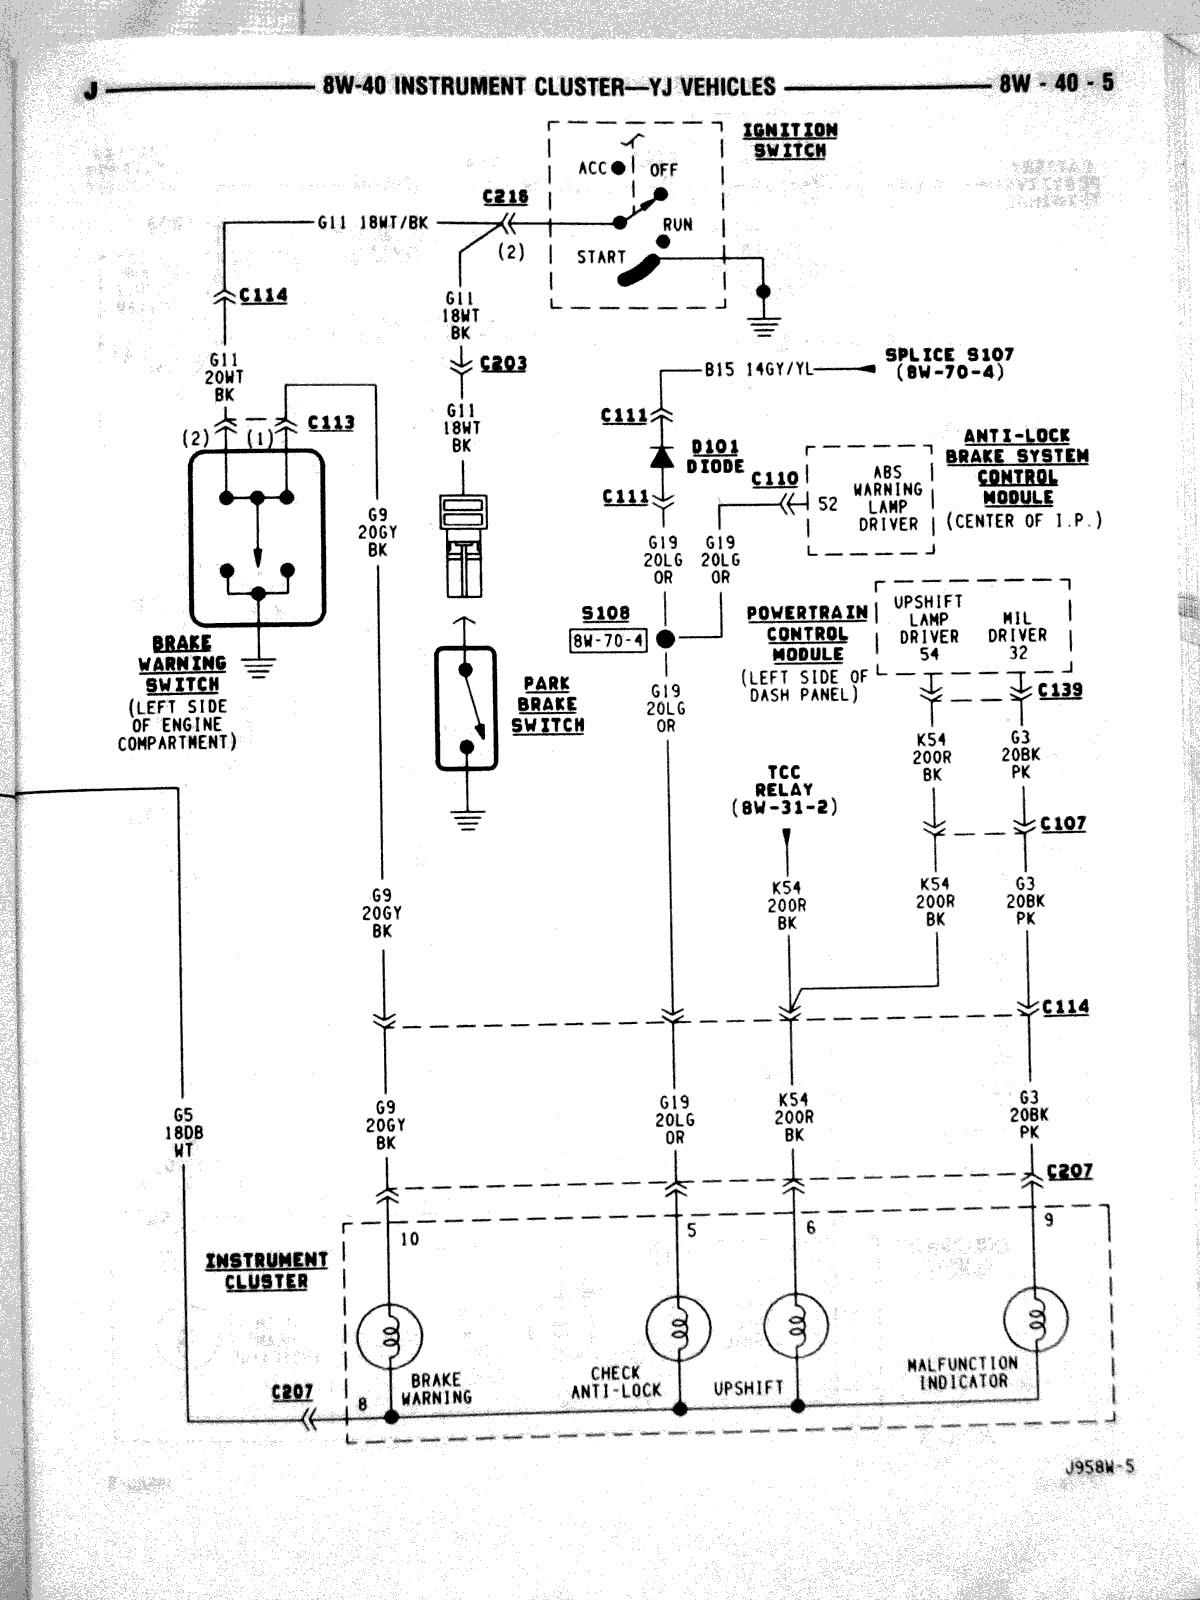 1987 Jeep Wrangler Wiring Harness Diagram - engineer wiring ... Jeep Tj Ke Light Wiring Diagram on bentley continental wiring diagram, jeep wrangler wiring diagram, chrysler crossfire wiring diagram, isuzu hombre wiring diagram, jeep tj hvac diagram, jeep tj transmission diagram, sprinter rv wiring diagram, jeep tj serpentine belt diagram, alfa romeo spider wiring diagram, mitsubishi starion wiring diagram, jeep zj wiring diagram, jeep j20 wiring diagram, jeep cherokee wiring diagram, jeep jk wiring diagram, jeep tj vacuum diagram, daihatsu rocky wiring diagram, cadillac xlr wiring diagram, jeep tj sub wire diagram, mercury capri wiring diagram, jeep tj fuse diagram,